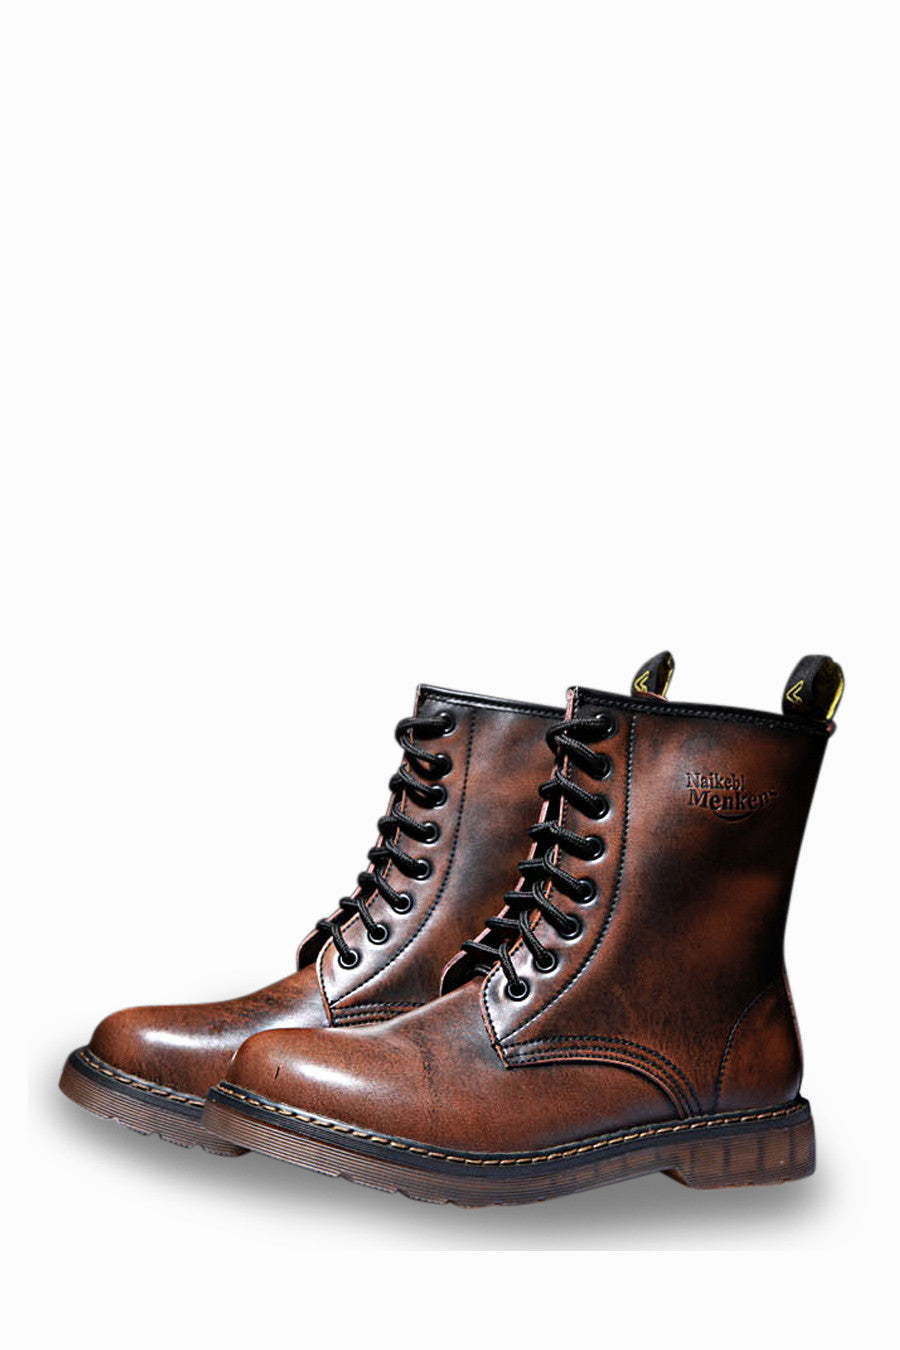 Vintage Martin Army Boots In Brown. Tap to expand 9bf2160dfb1